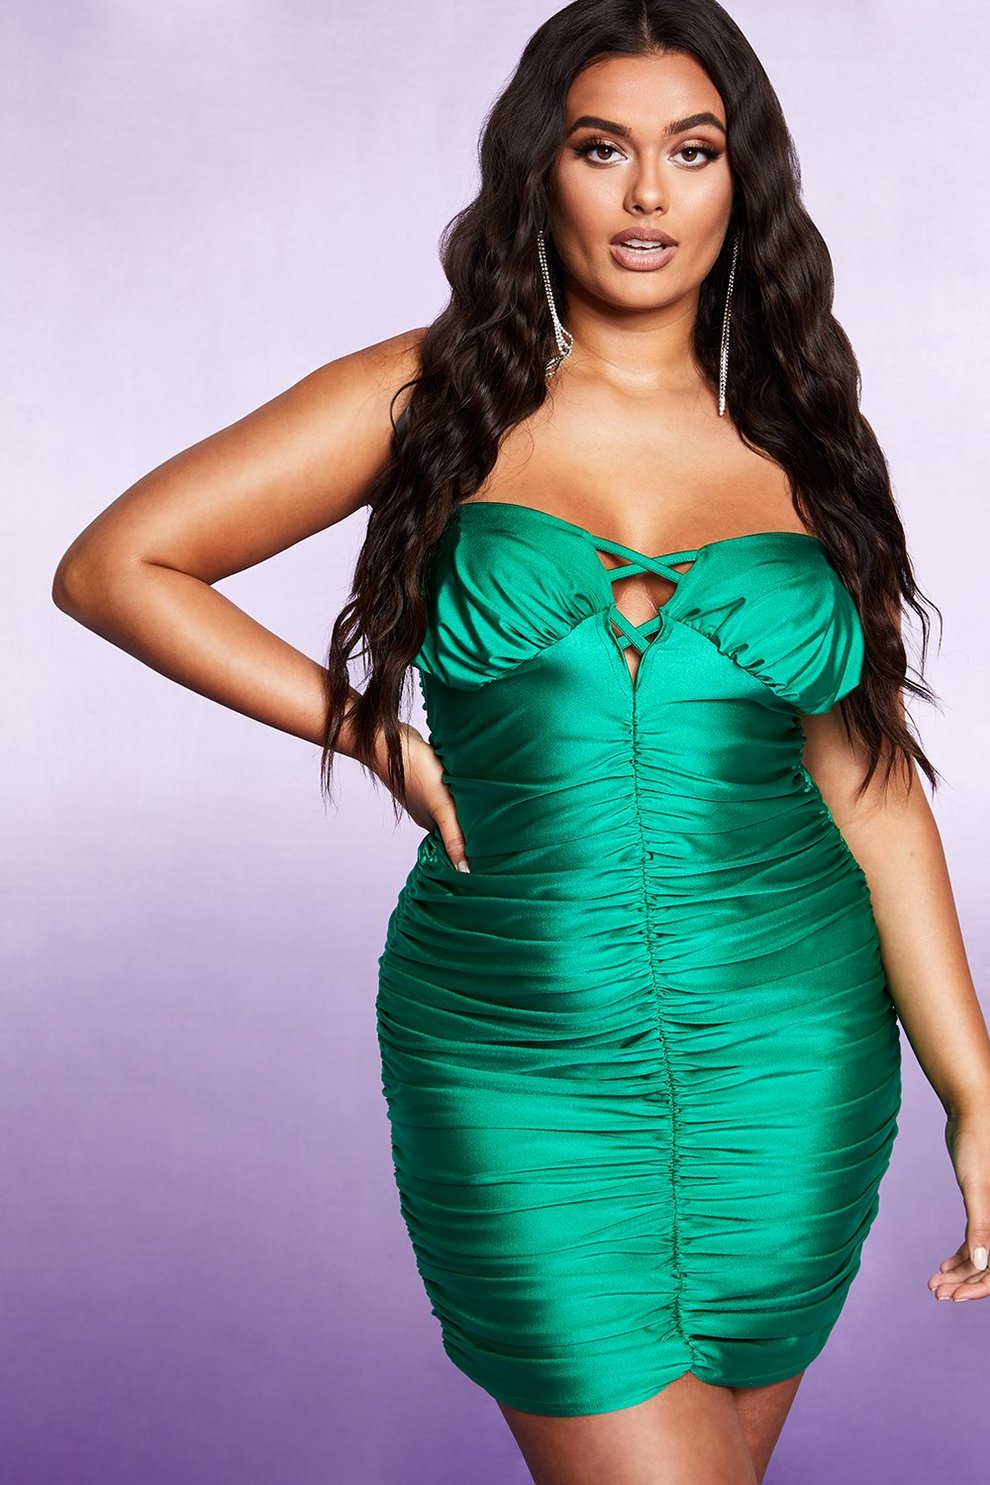 bcf8f49ff08f1c Womens Emerald Lace Up Detail All Over Ruched Dress. Hover to zoom